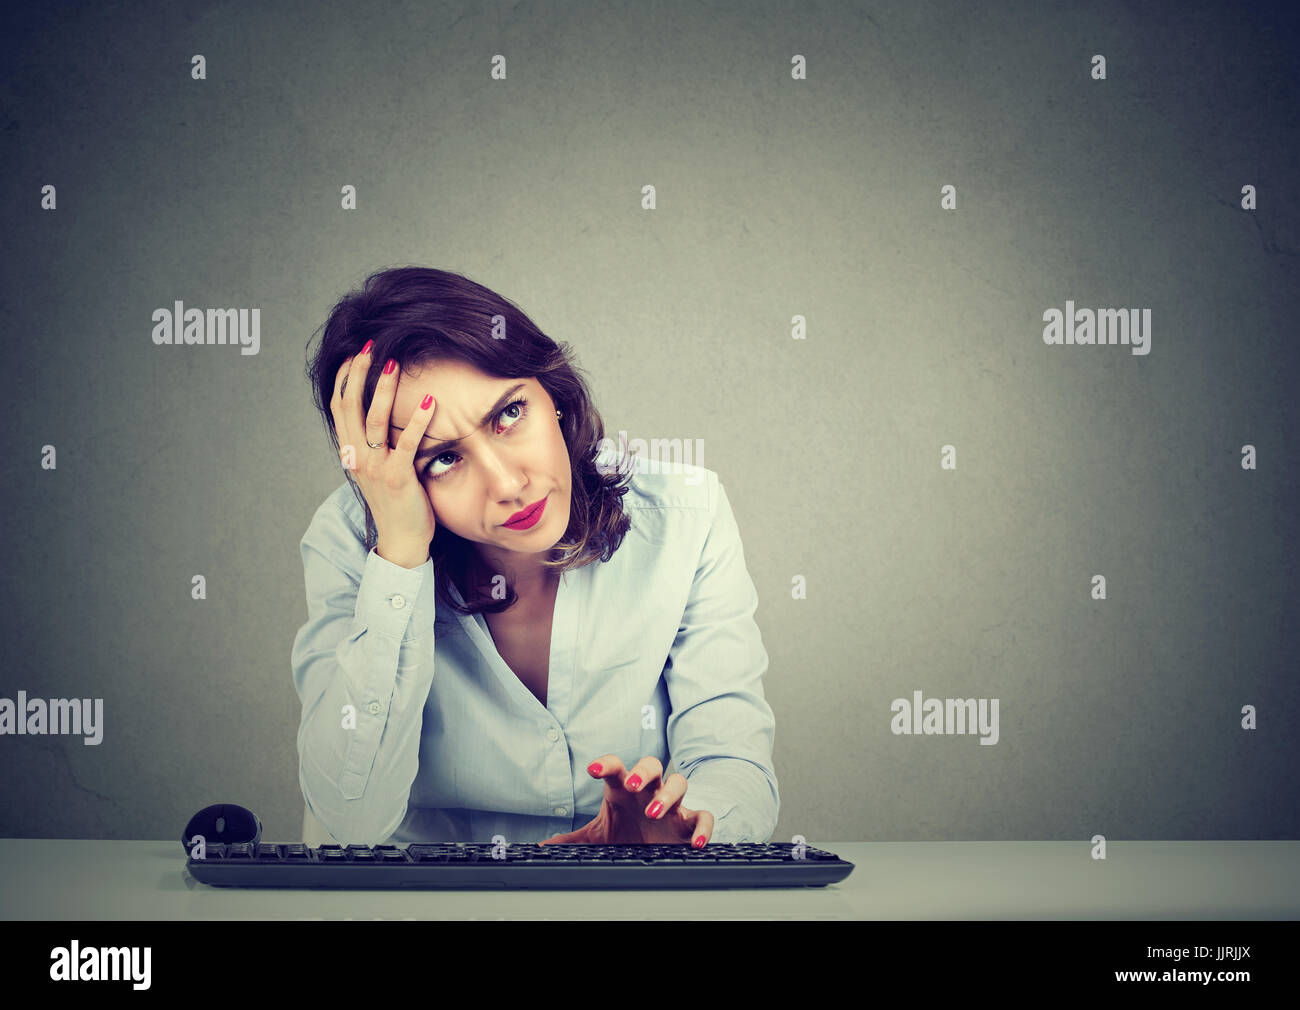 Desperate young woman trying to log into her computer forgot password - Stock Image